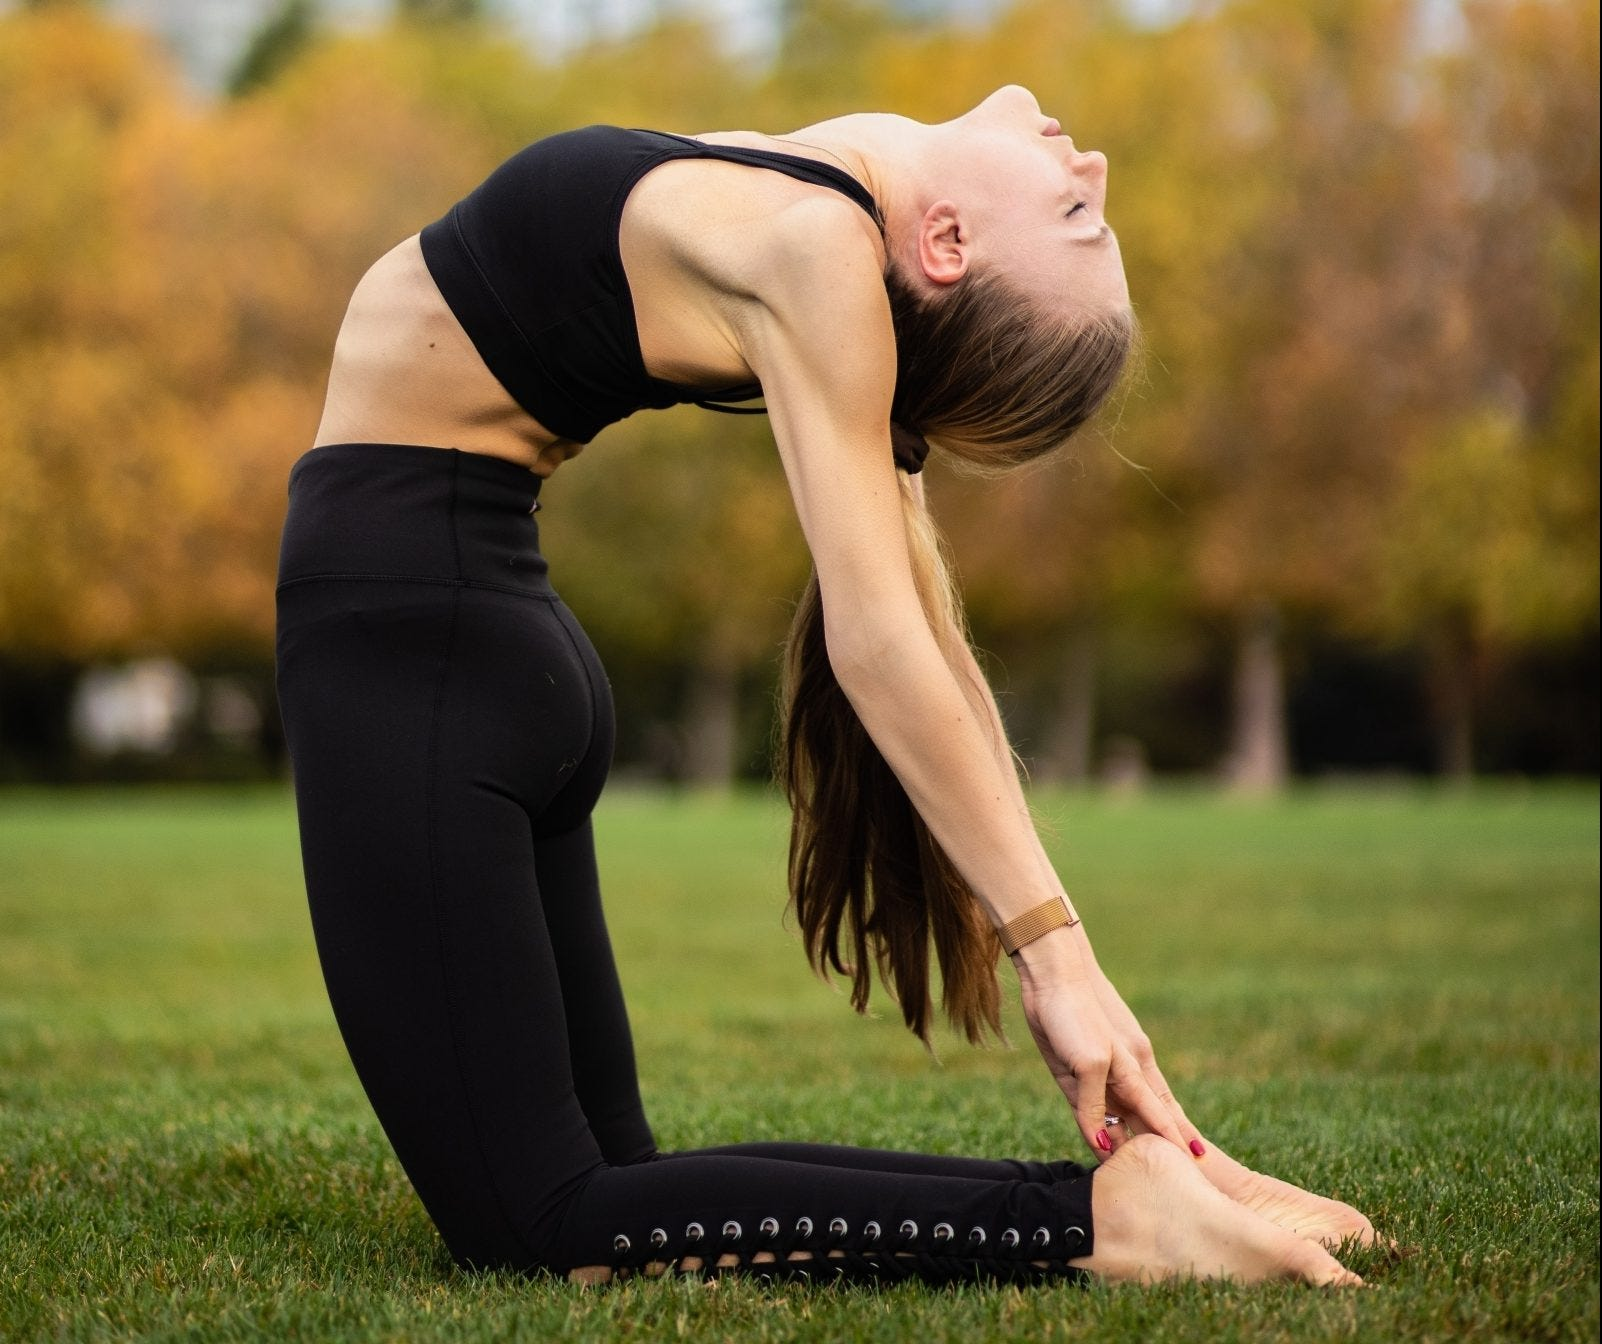 Woman doing yoga camel pose in a park